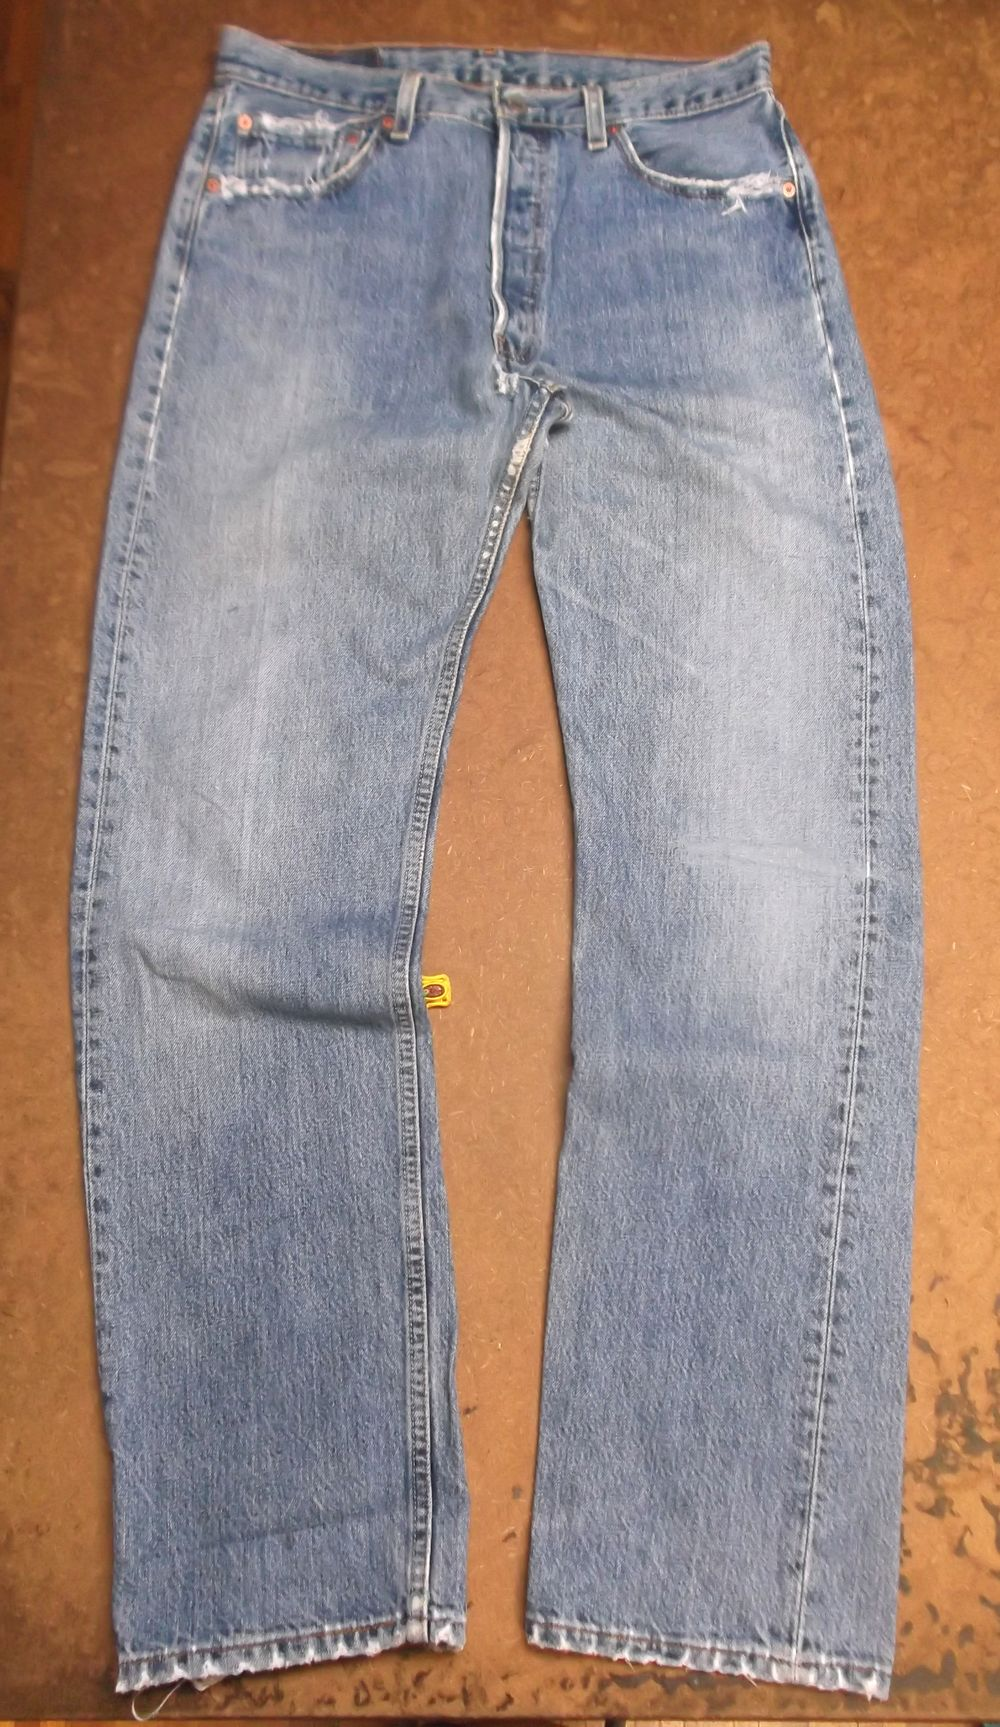 jeans1332-1